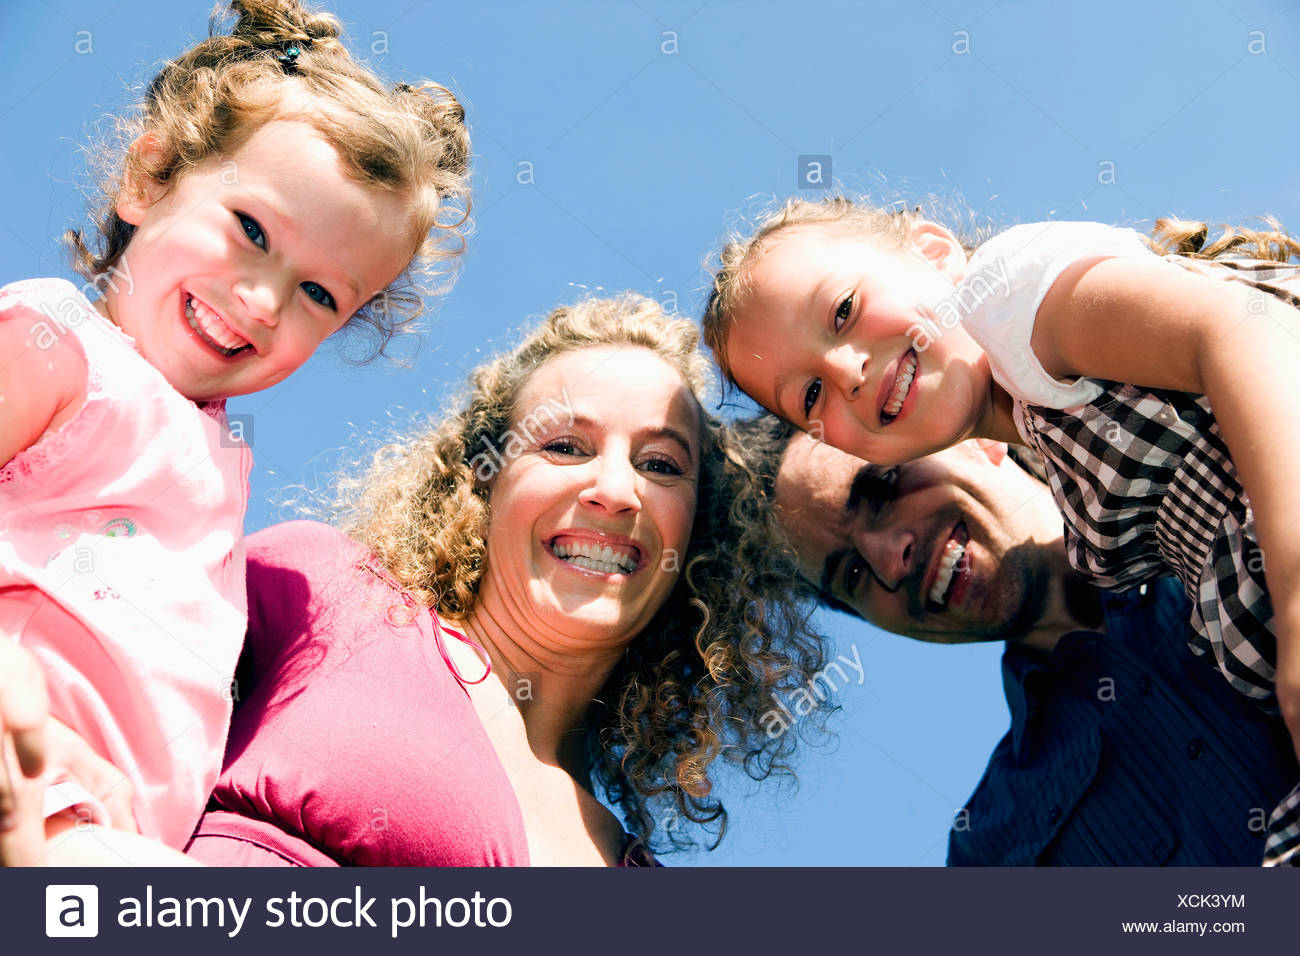 low angle portrait of family with two children - Stock Image